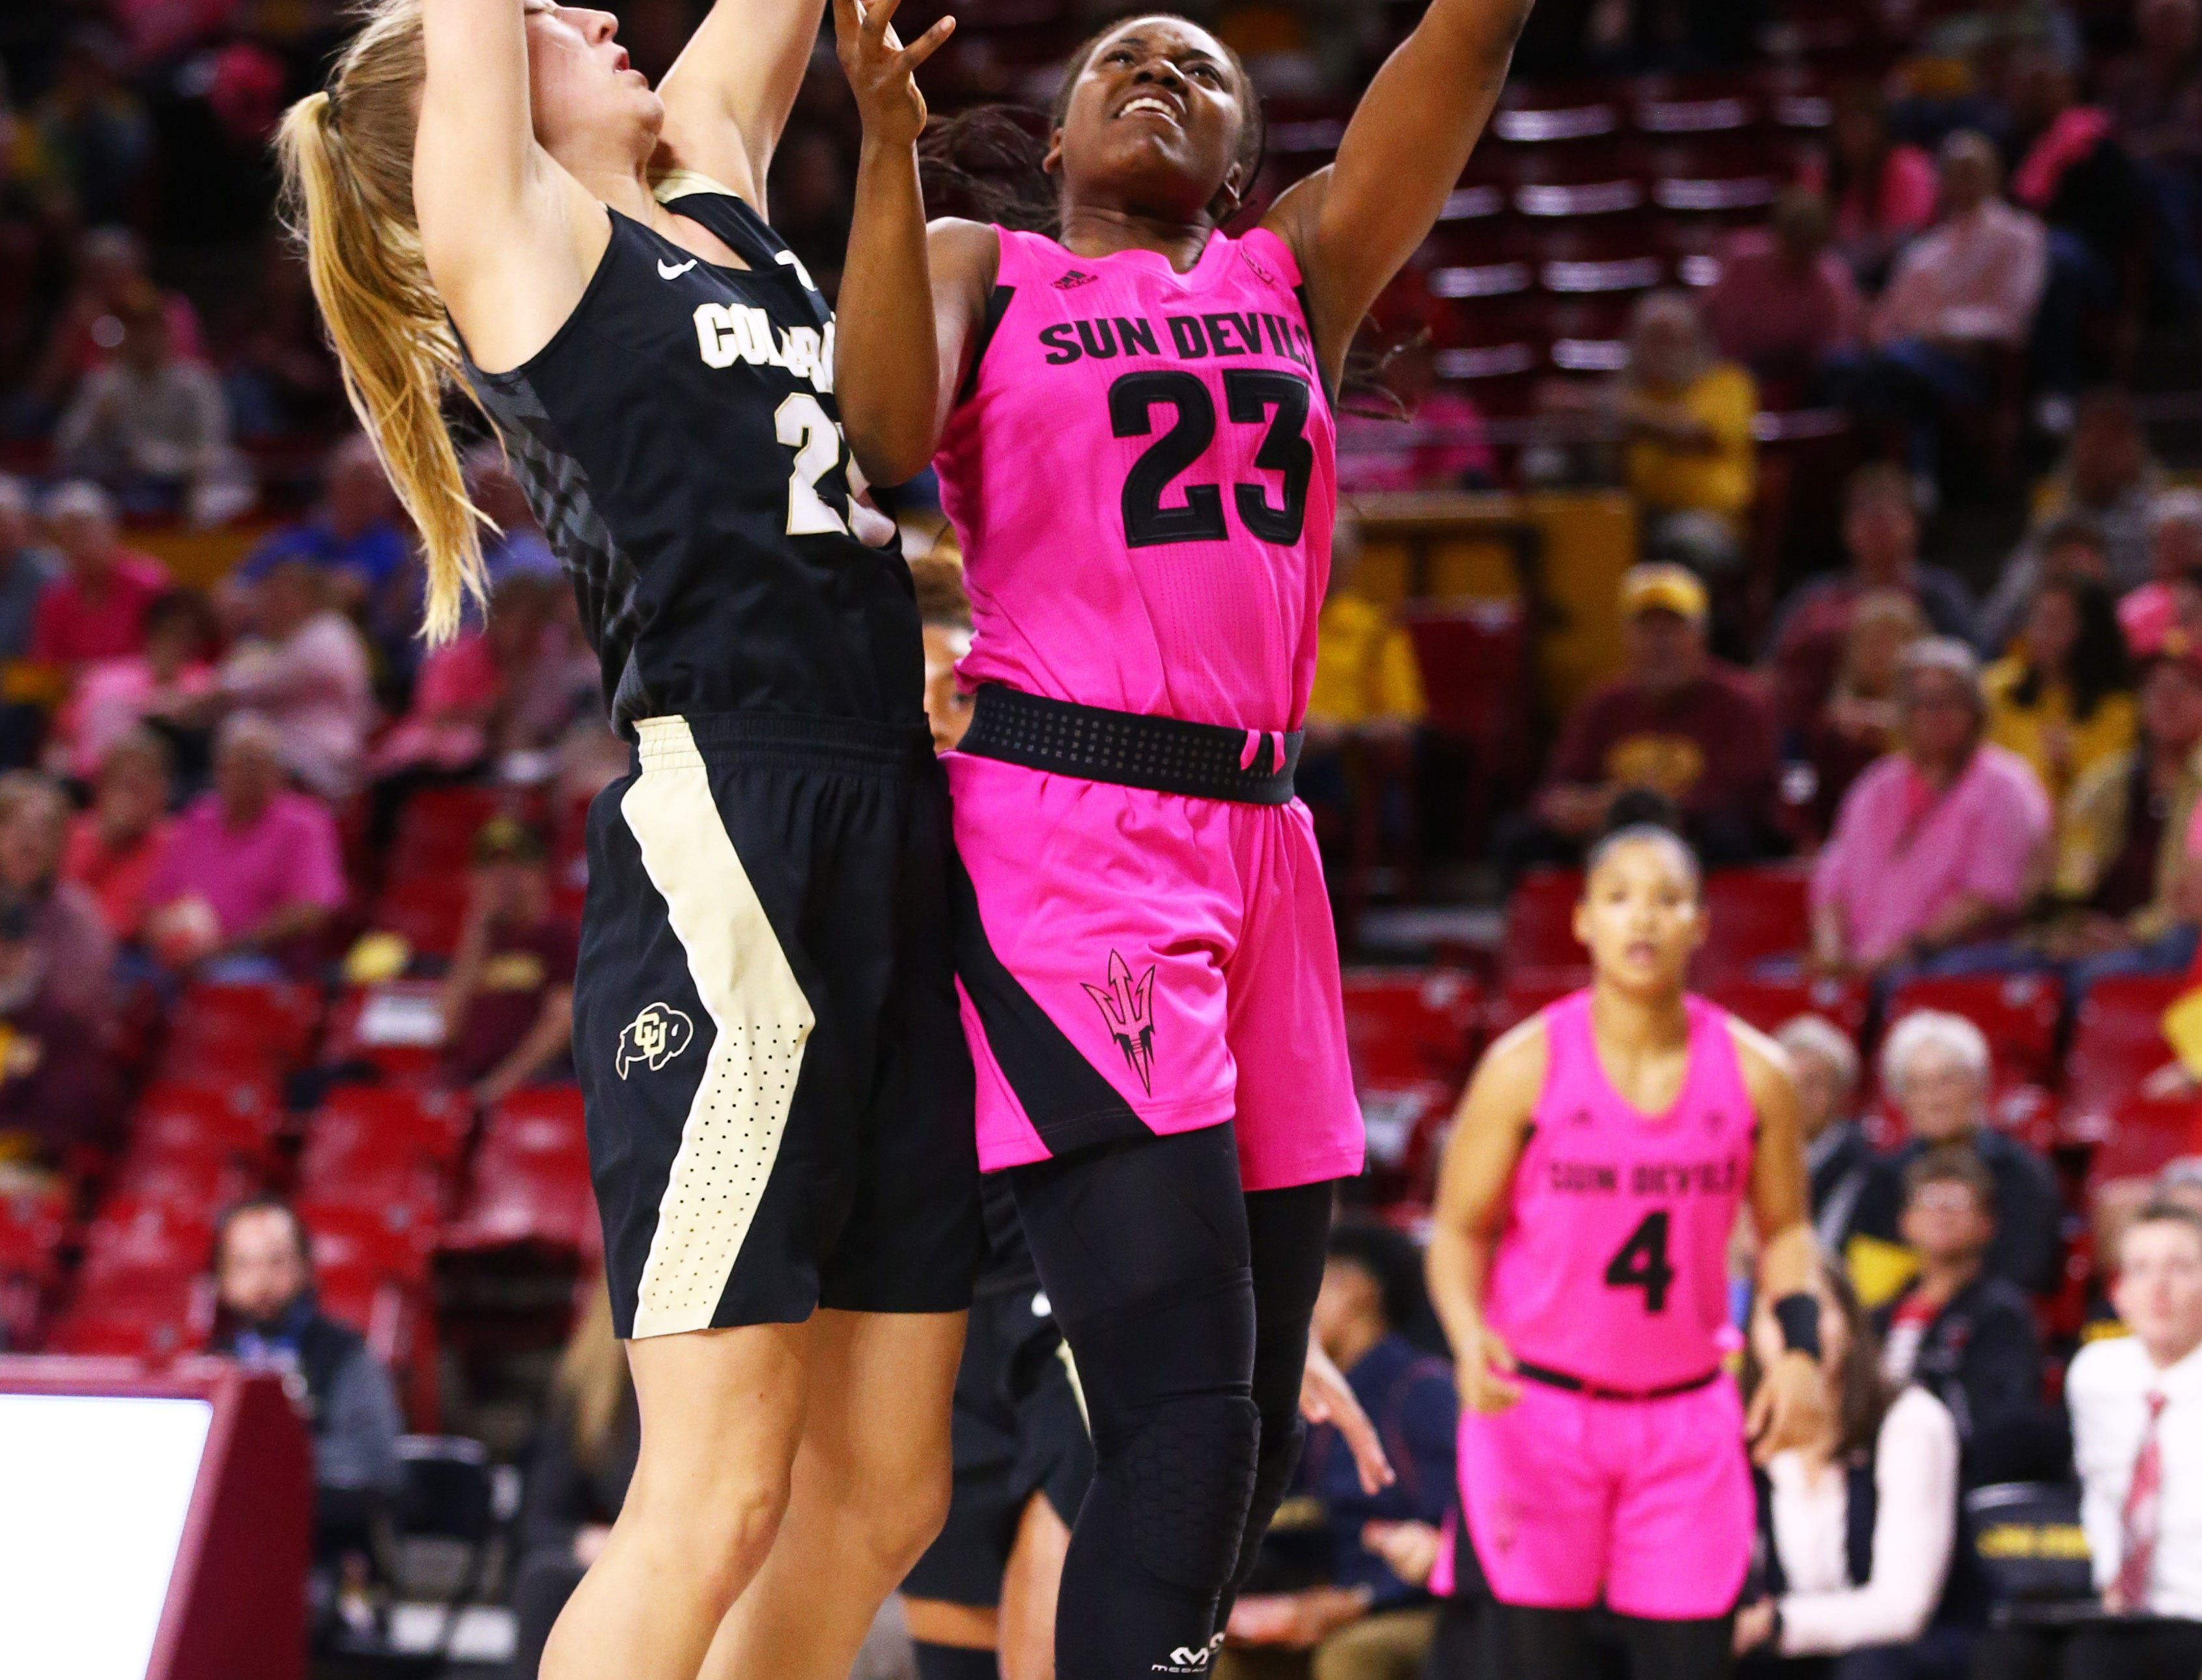 Arizona State Sun Devils guard Iris Mbulito (23) scores against the Colorado Buffaloes in the first half on Feb. 15 at Wells Fargo Arena in Tempe, Ariz.